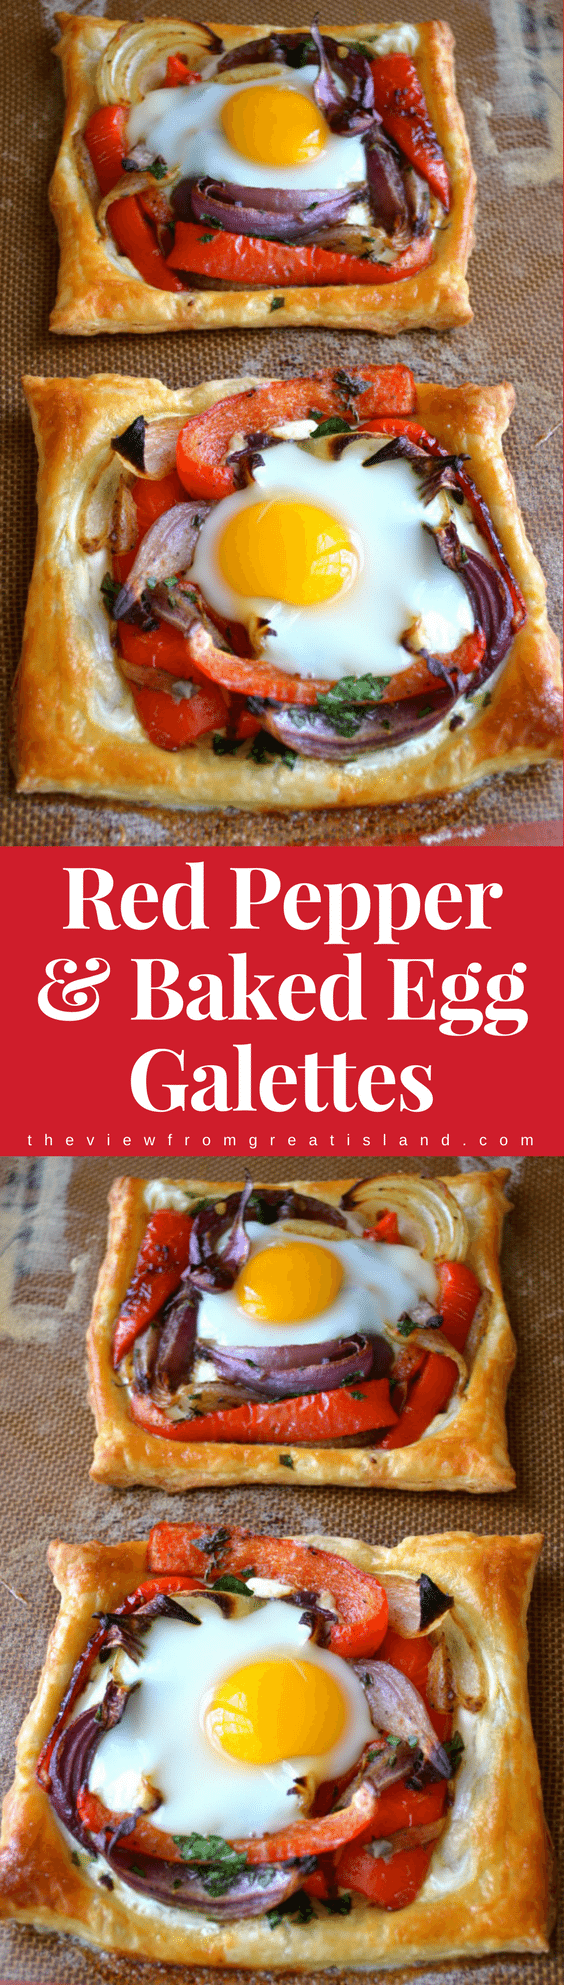 Red Pepper and Baked Egg Galettes from Jerusalem (the book) ~ these eggs baked in puff pastry are the ultimate breakfast in bed recipe! #eggs #breakfast #brunch #puffpastry #bakedeggs #breakfastinbed #mothersday #valentinesday #Christmasbreakfast #holidaybreakfast #ottolenghi #jerusalem